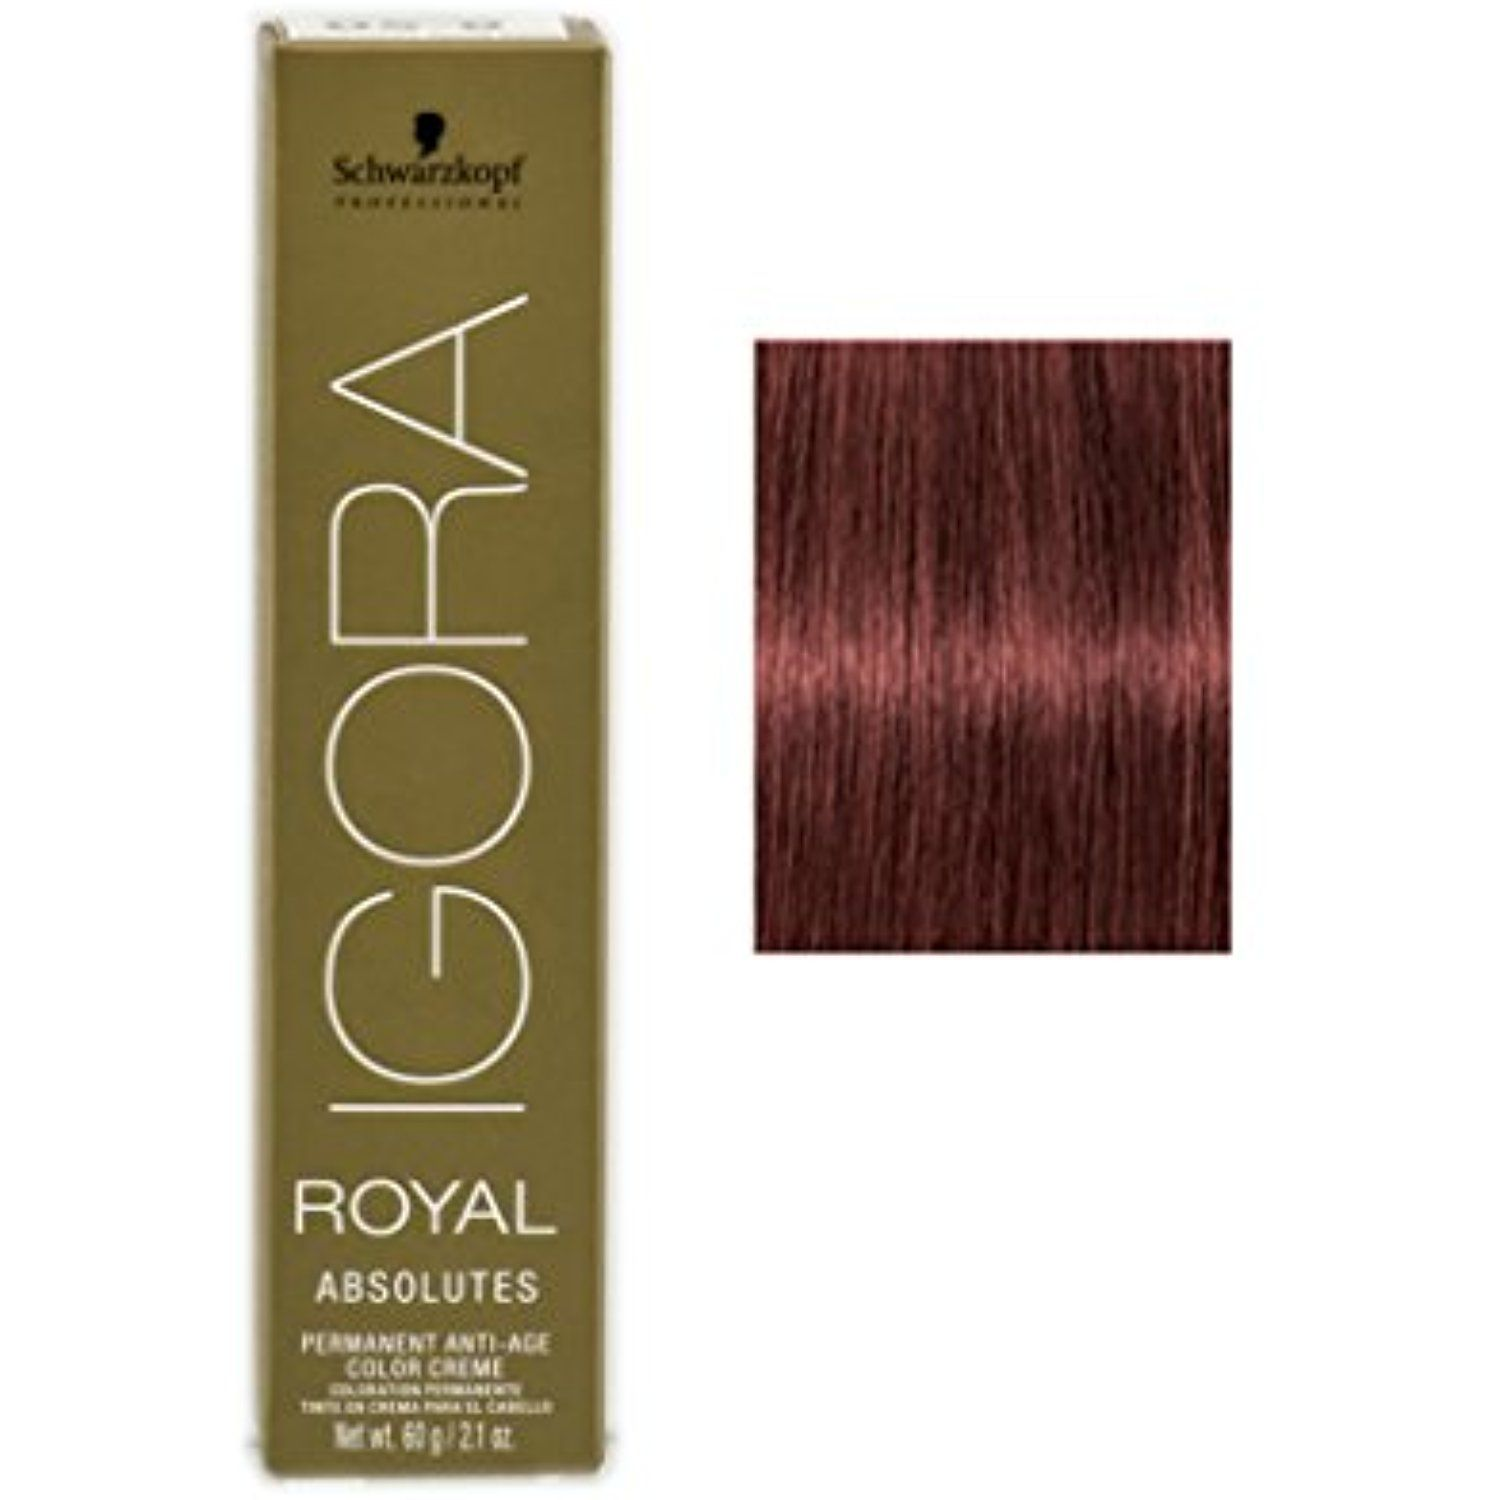 Schwarzkopf professional igora royal absolutes hair color 6 80 schwarzkopf professional igora royal absolutes hair color 6 80 dark blonde red natural nvjuhfo Image collections